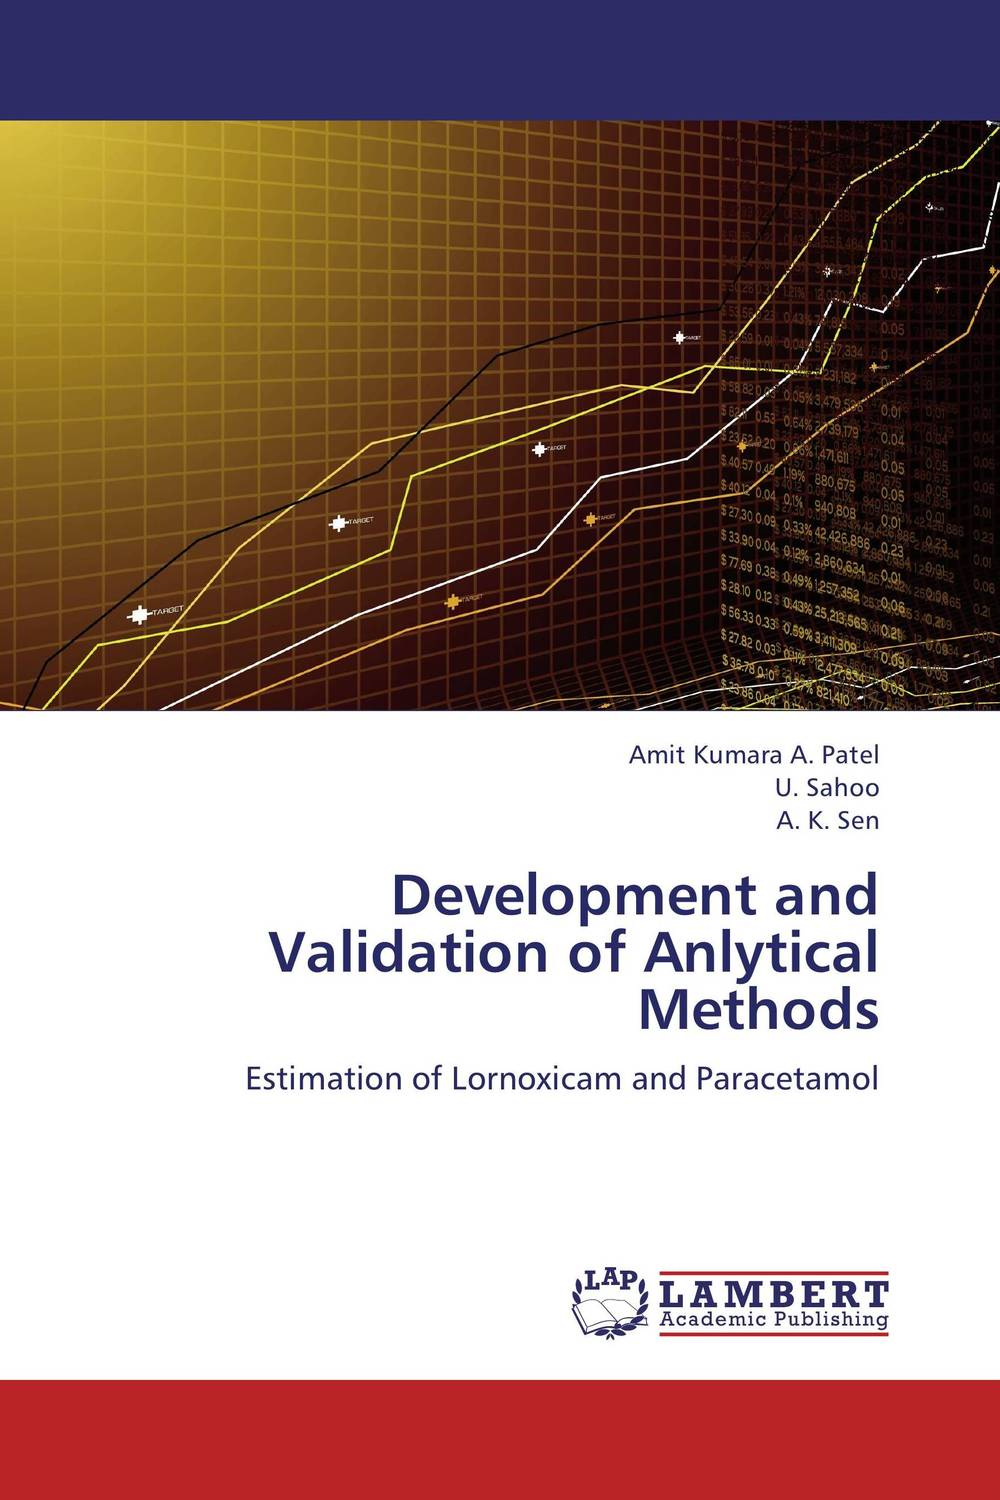 Development and Validation of Anlytical Methods christian analytical chemistry 3ed